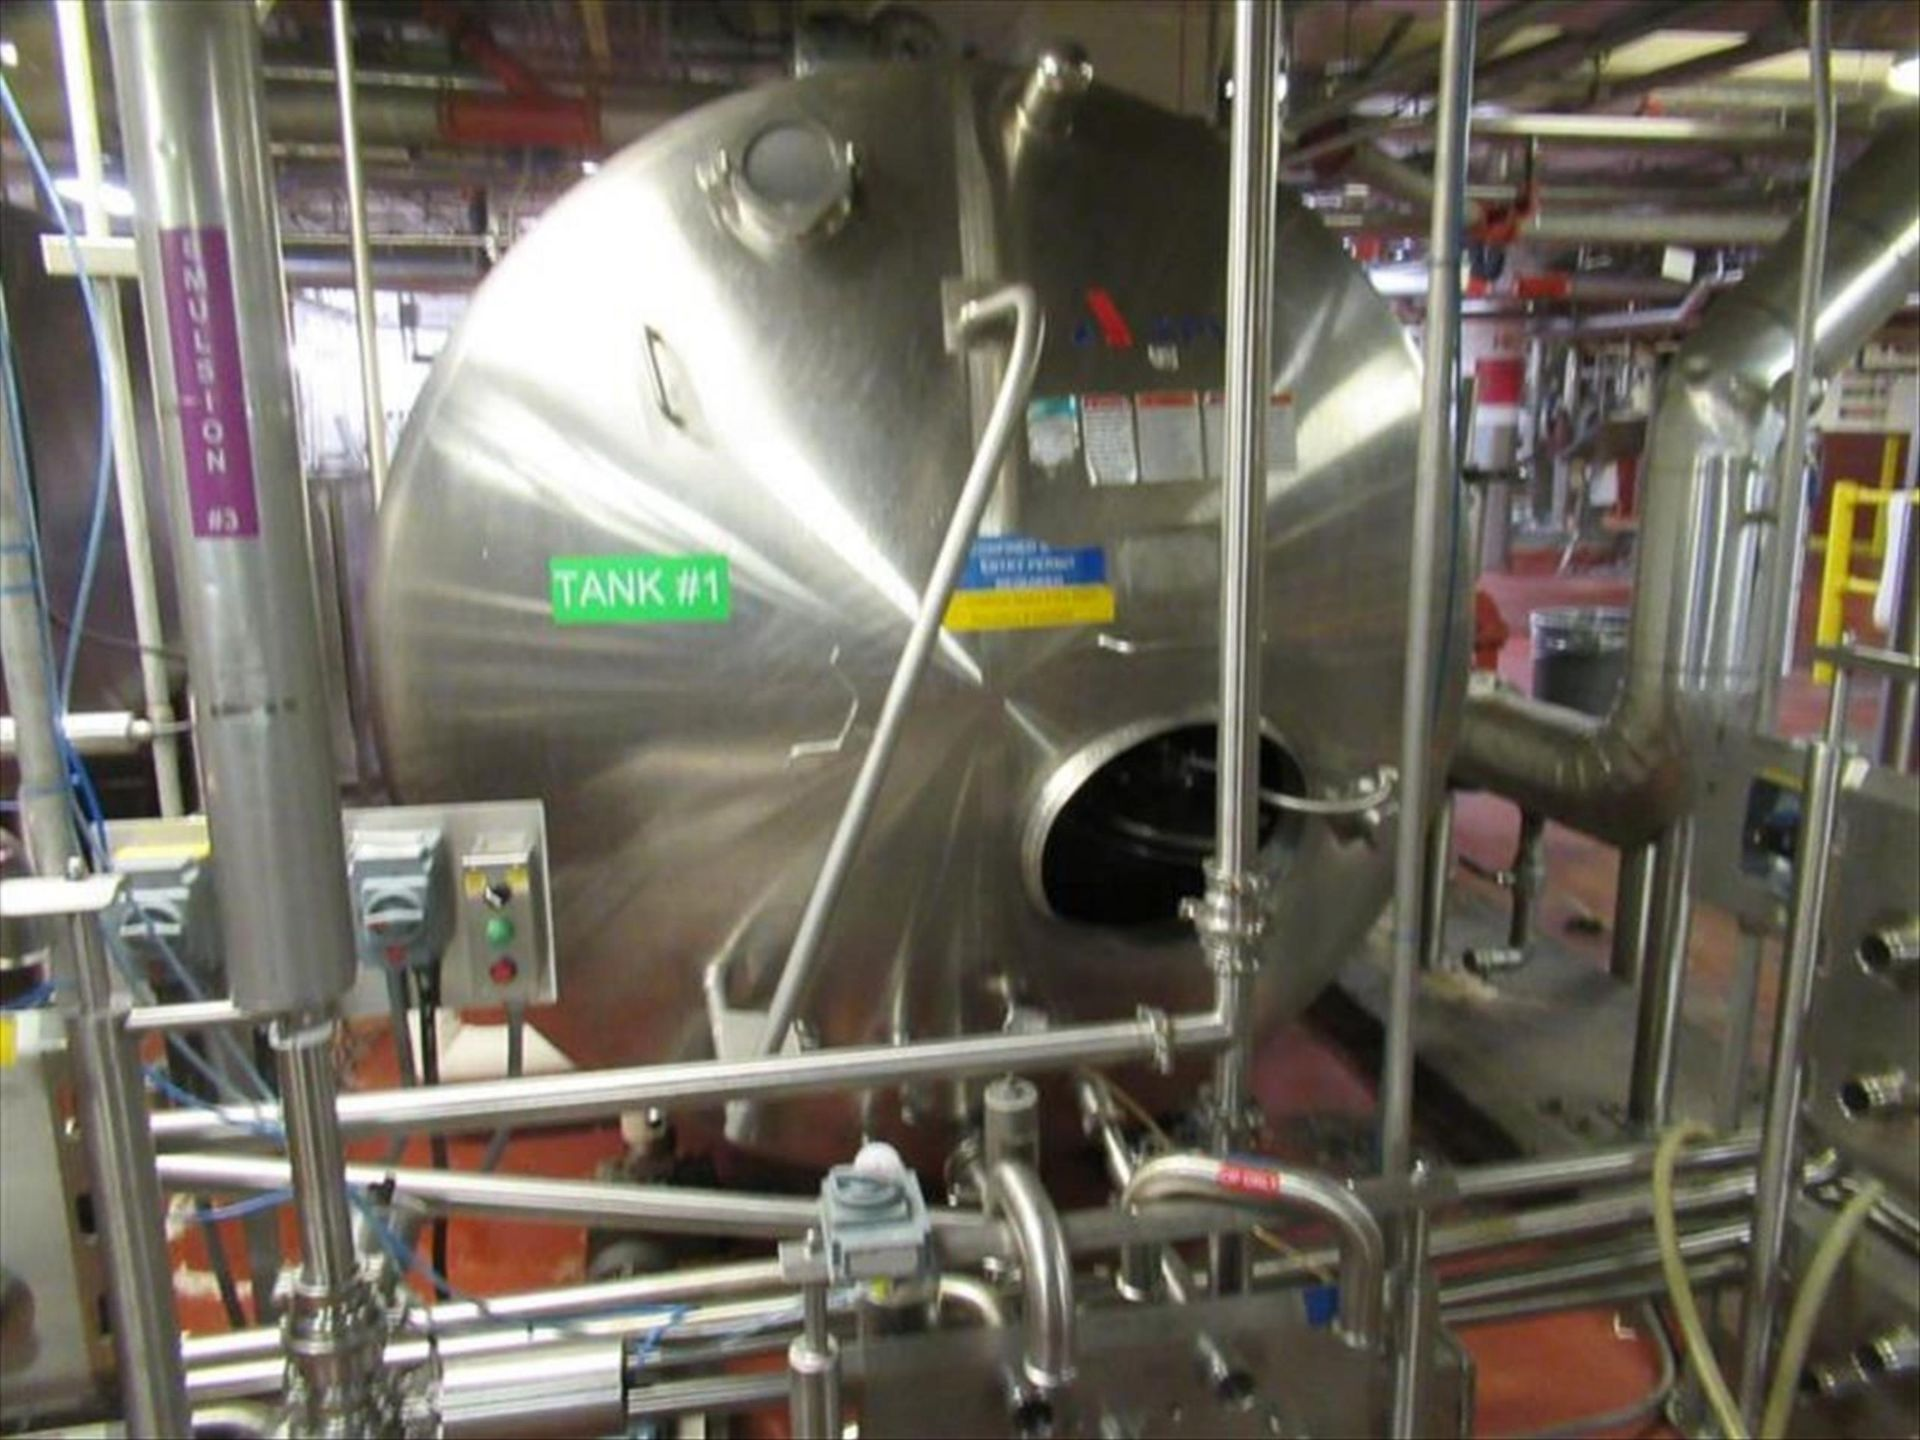 Lot 256 - Stainless Process Equipment tank # 2 ser. no. S7103-1 horizontal, jacketed tank, approx from 2,700